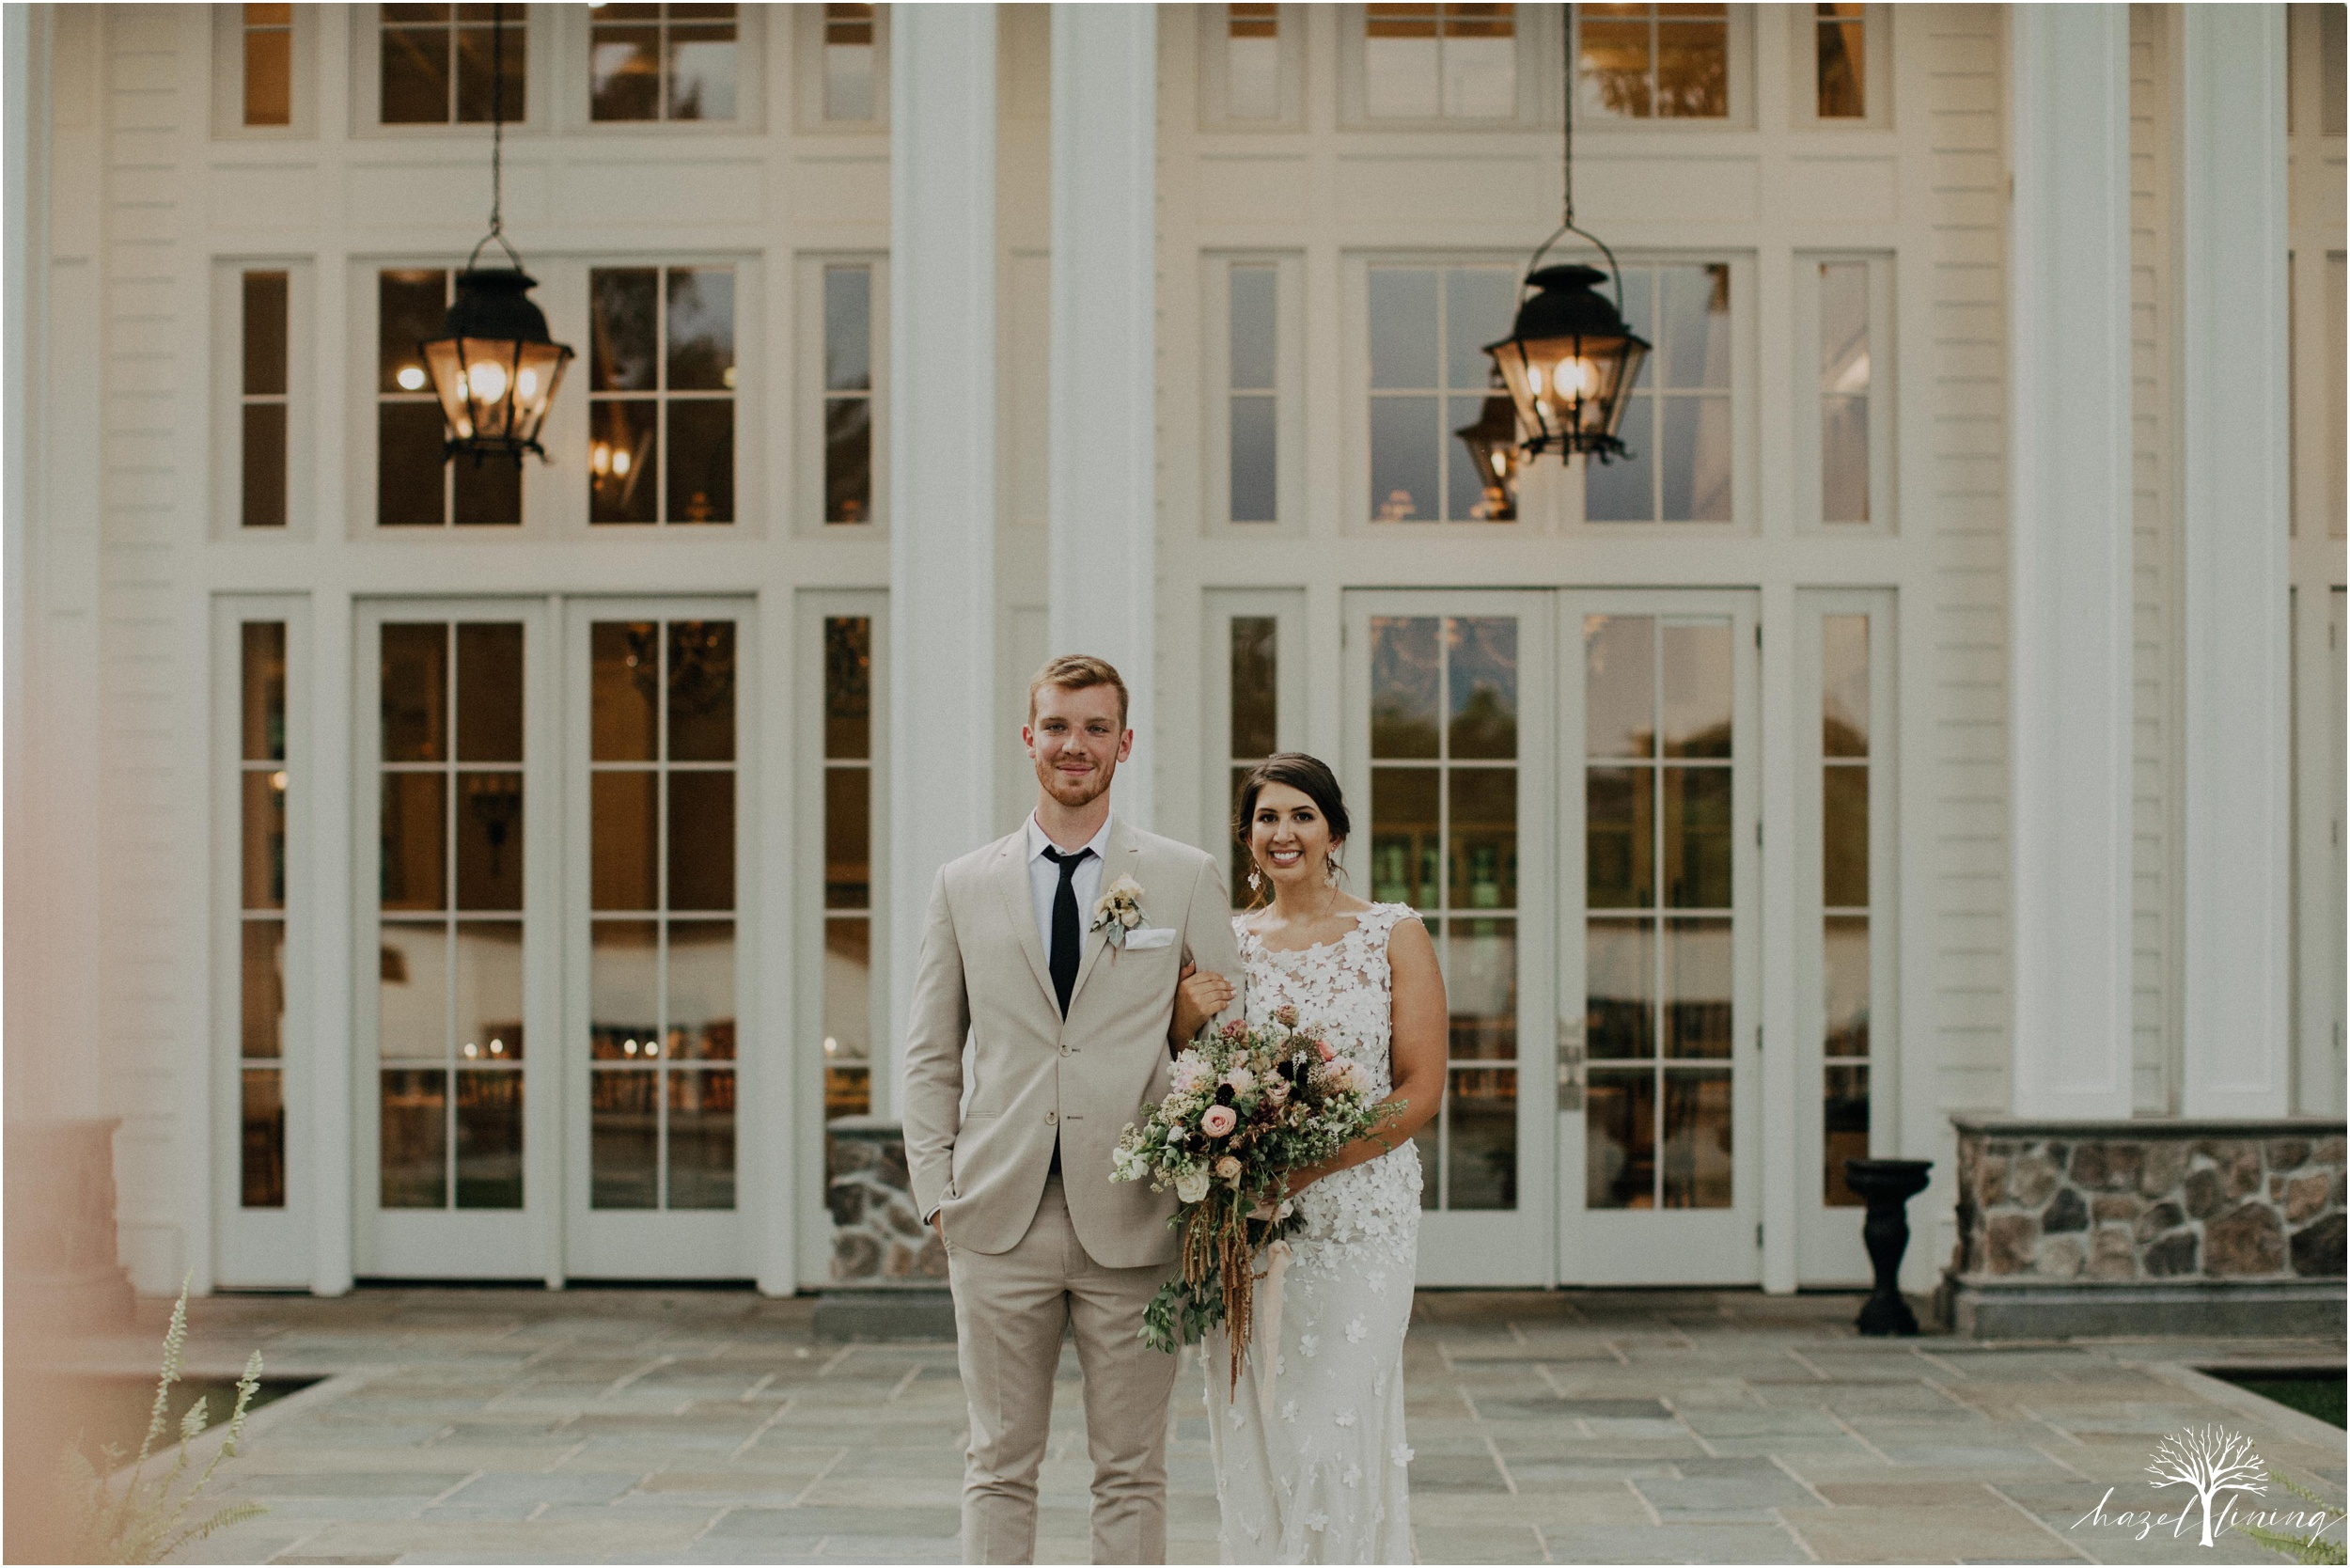 carl-chloe-the-ryland-inn-whitehouse-station-new-jersey-styled-squad-hazel-lining-photography-destination-elopement-wedding-engagement-photography_0042.jpg